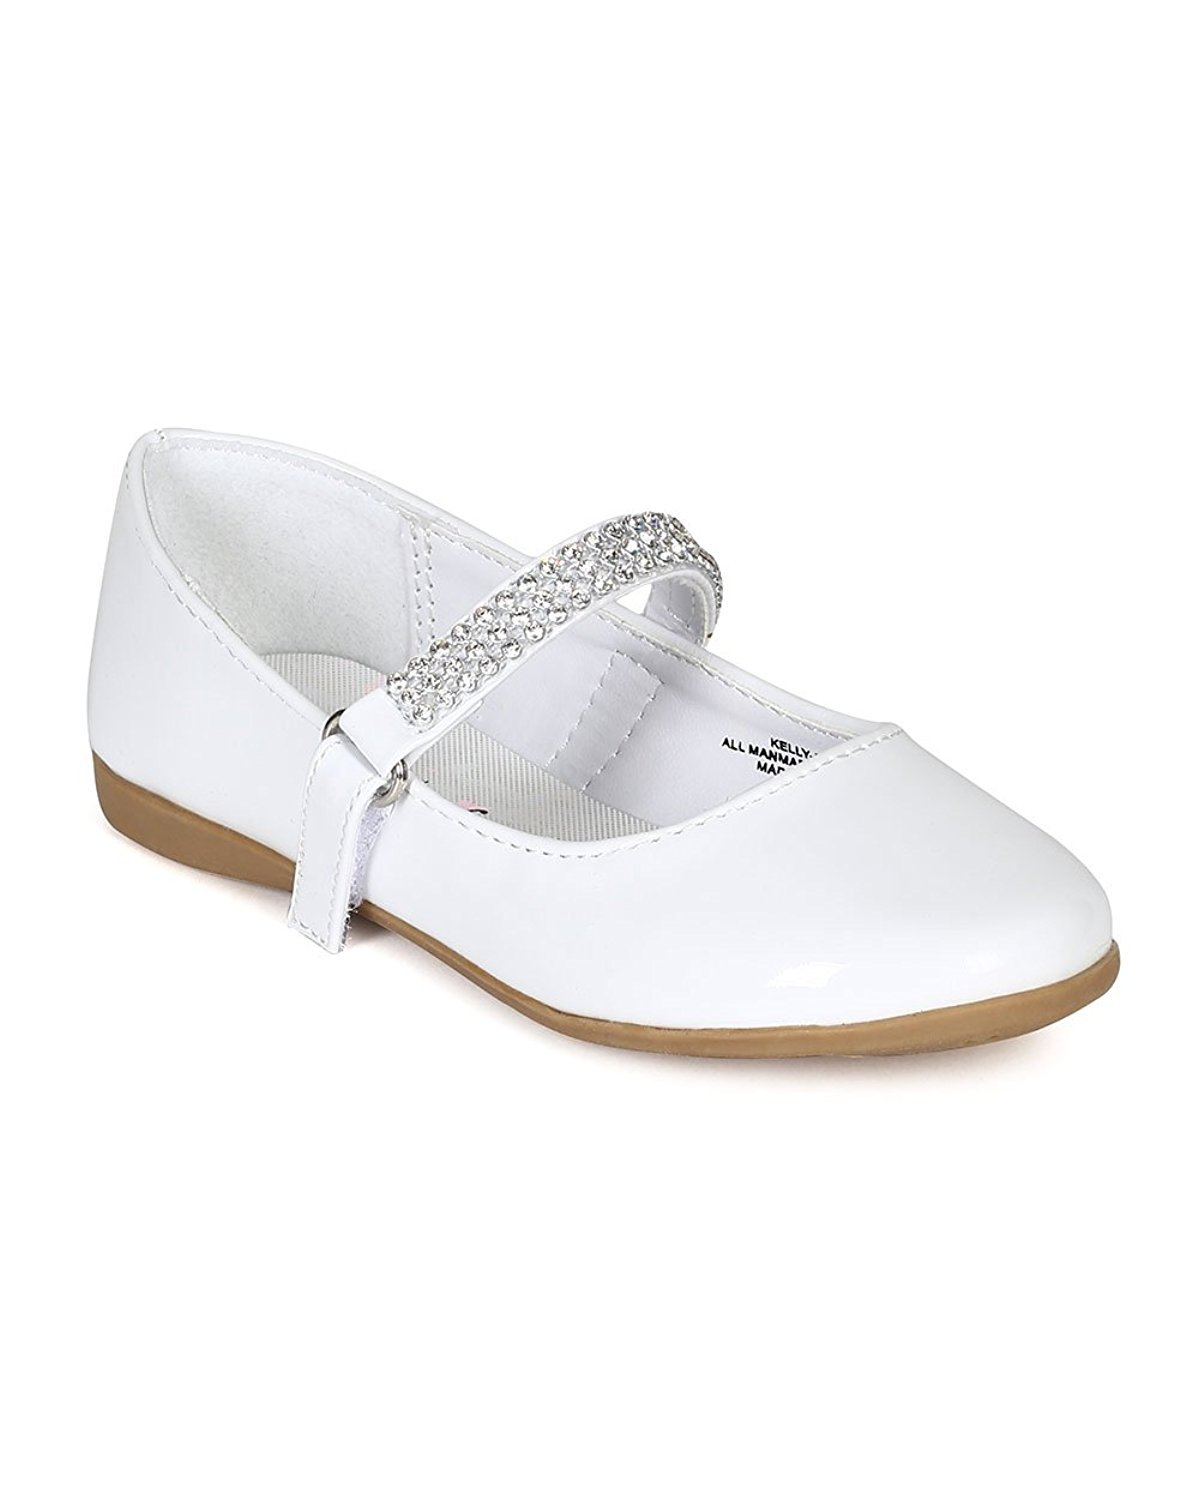 Patent Leatherette Round Toe Rhinestone Mary Jane Ballerina Flat (Toddler/Little Girl/Big Girl) CA03 - White (Size: Little Kid 12)